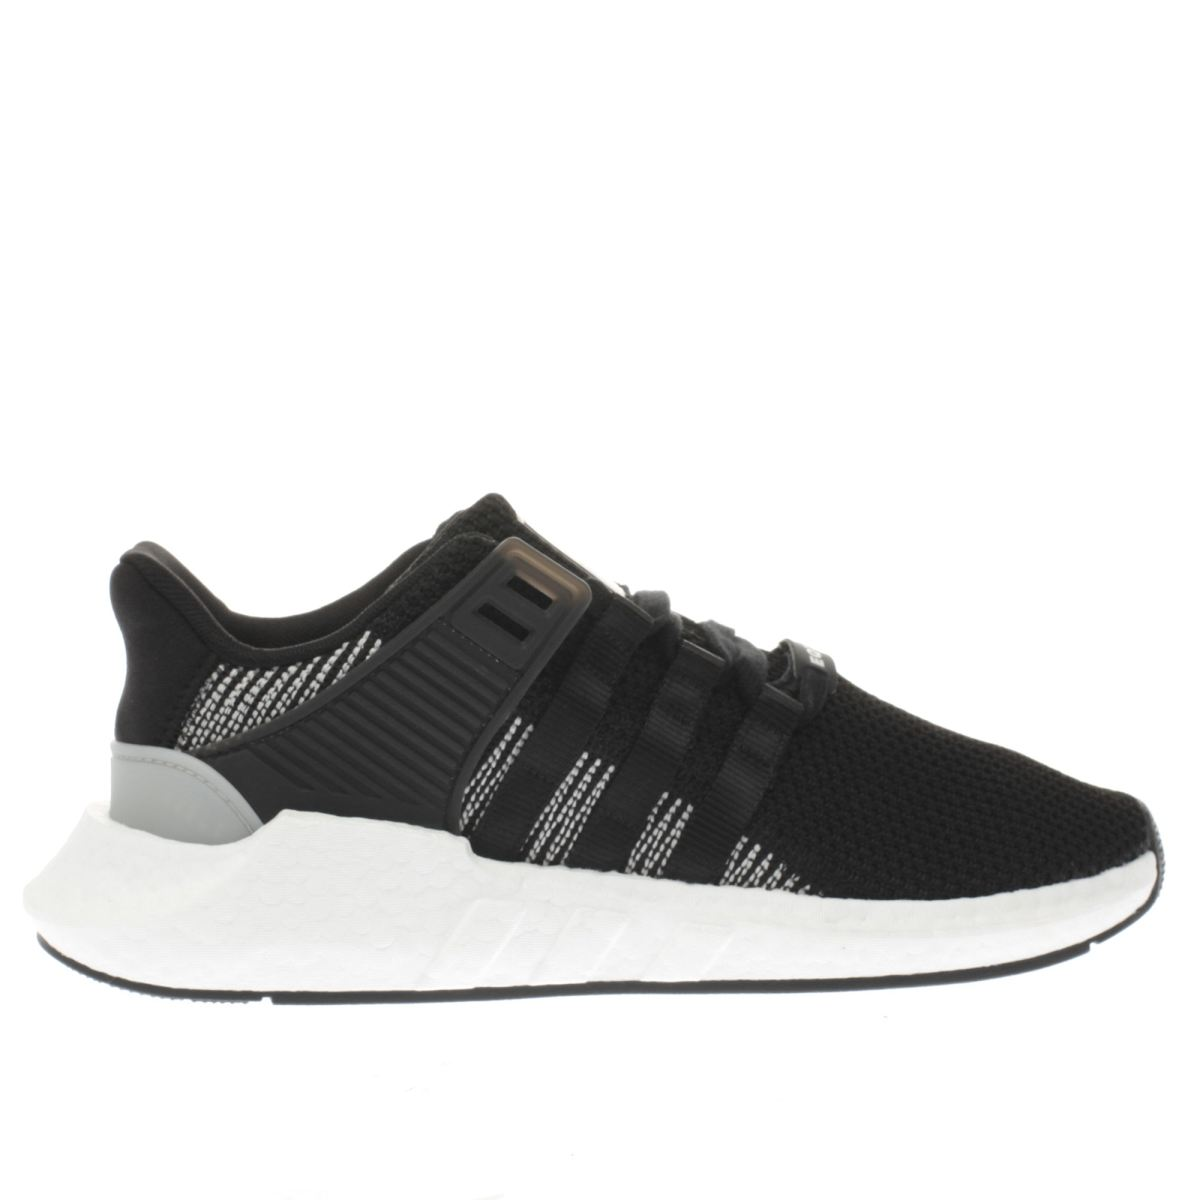 adidas black & white eqt support 93/17 trainers